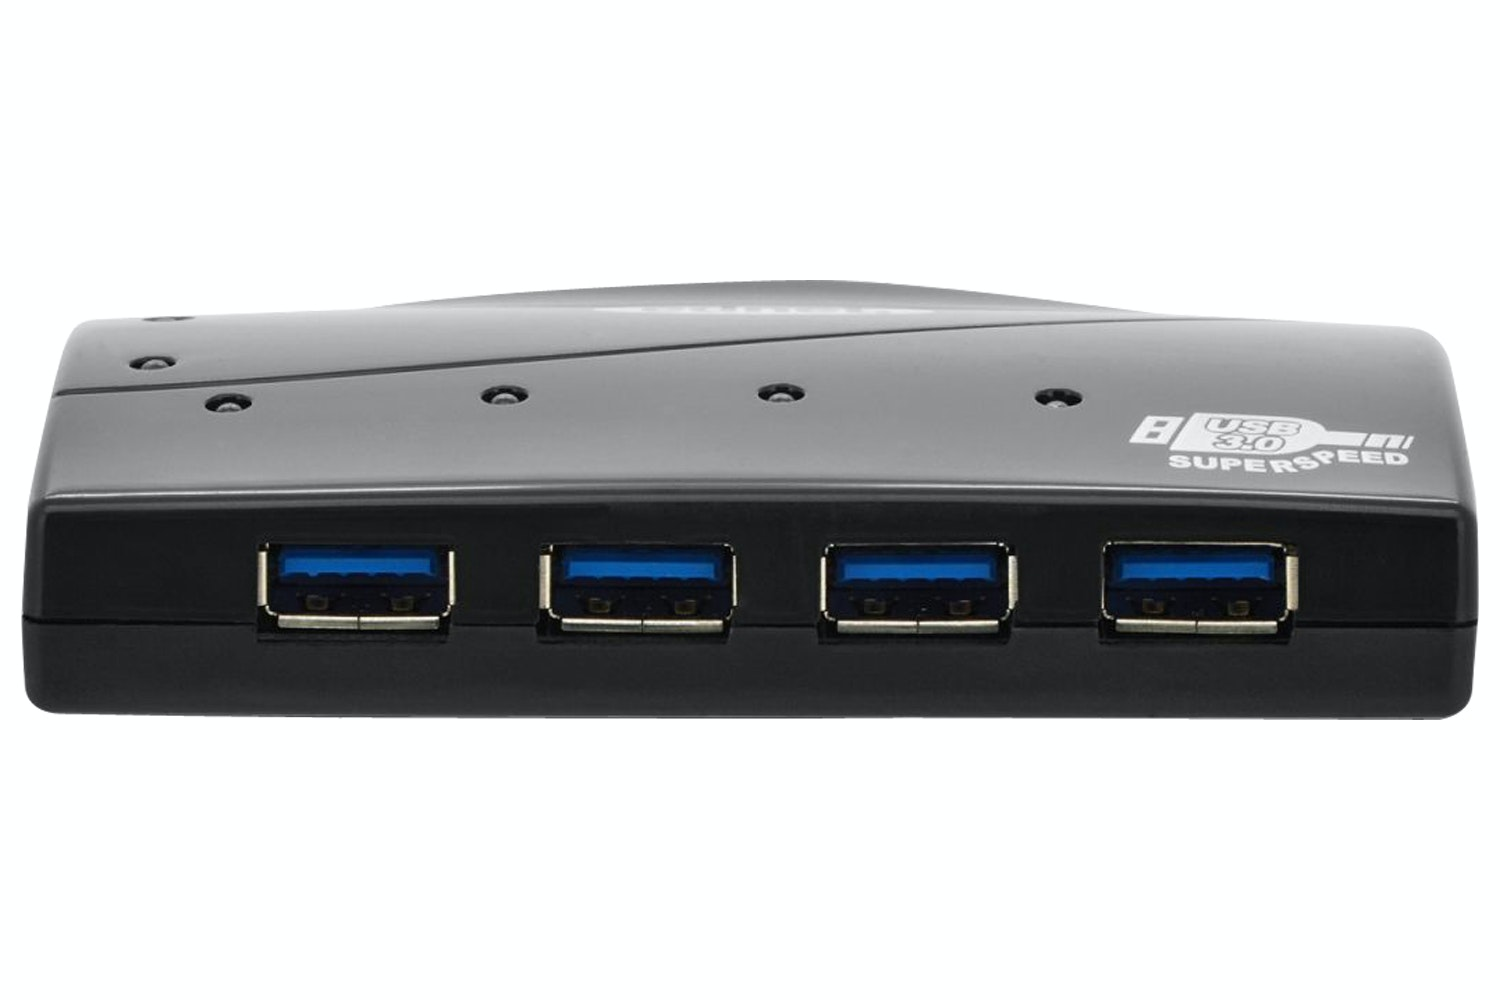 Ednet 4-Port USB 3.0 Hub